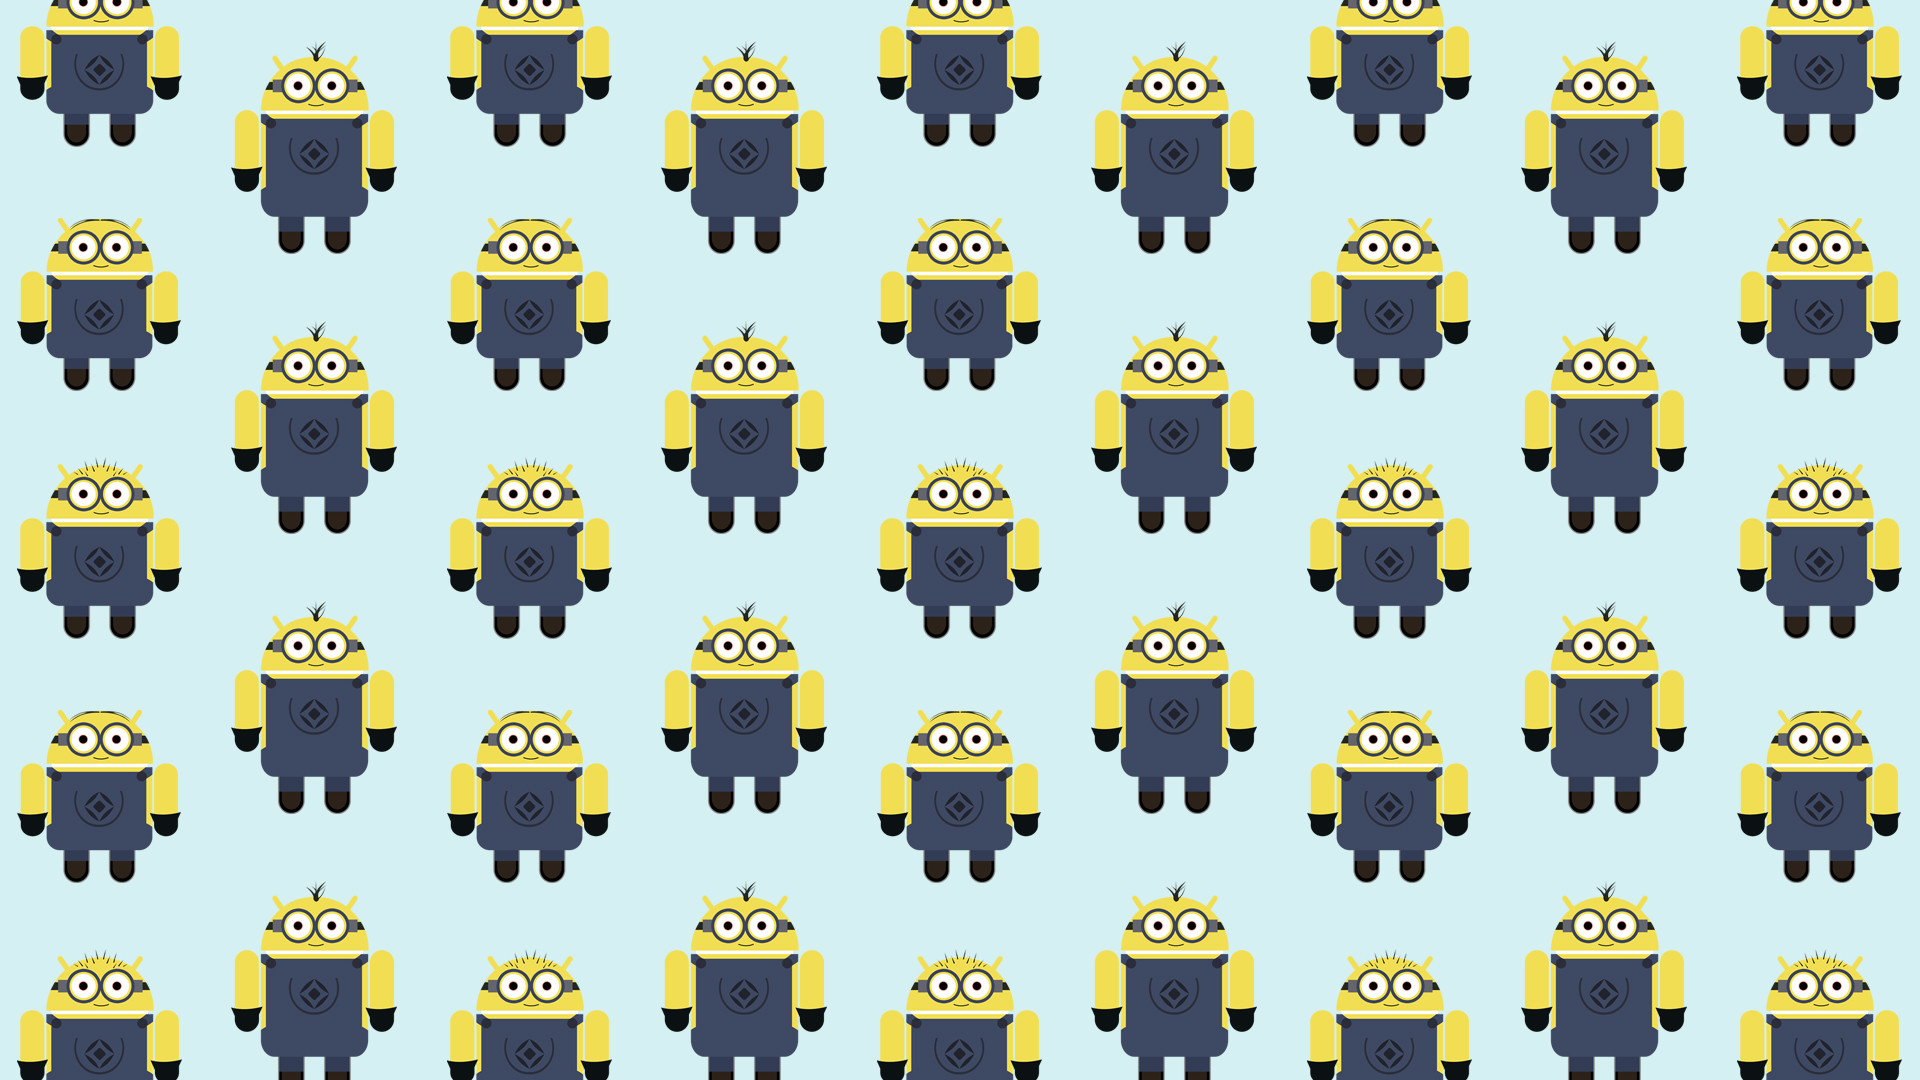 Cute Mustaches Wallpapers Minions With Mustaches Wallpaper 80 Images